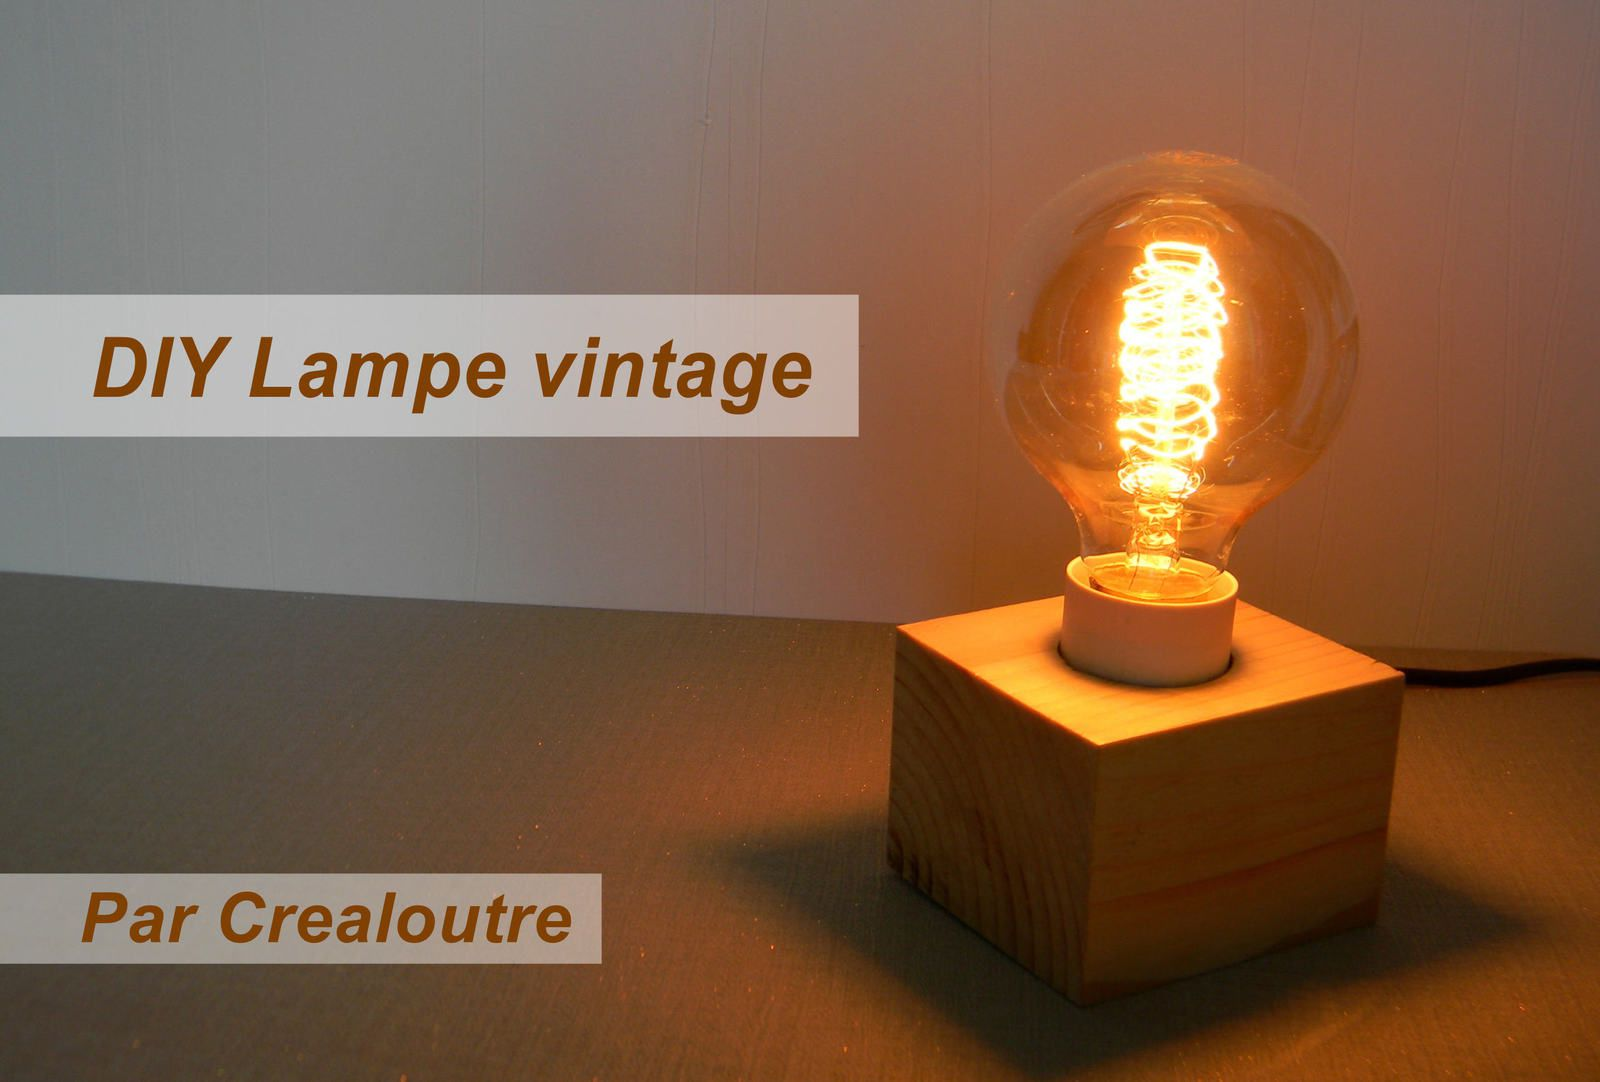 diy lampe r tro vintage avec rs components crealoutre. Black Bedroom Furniture Sets. Home Design Ideas